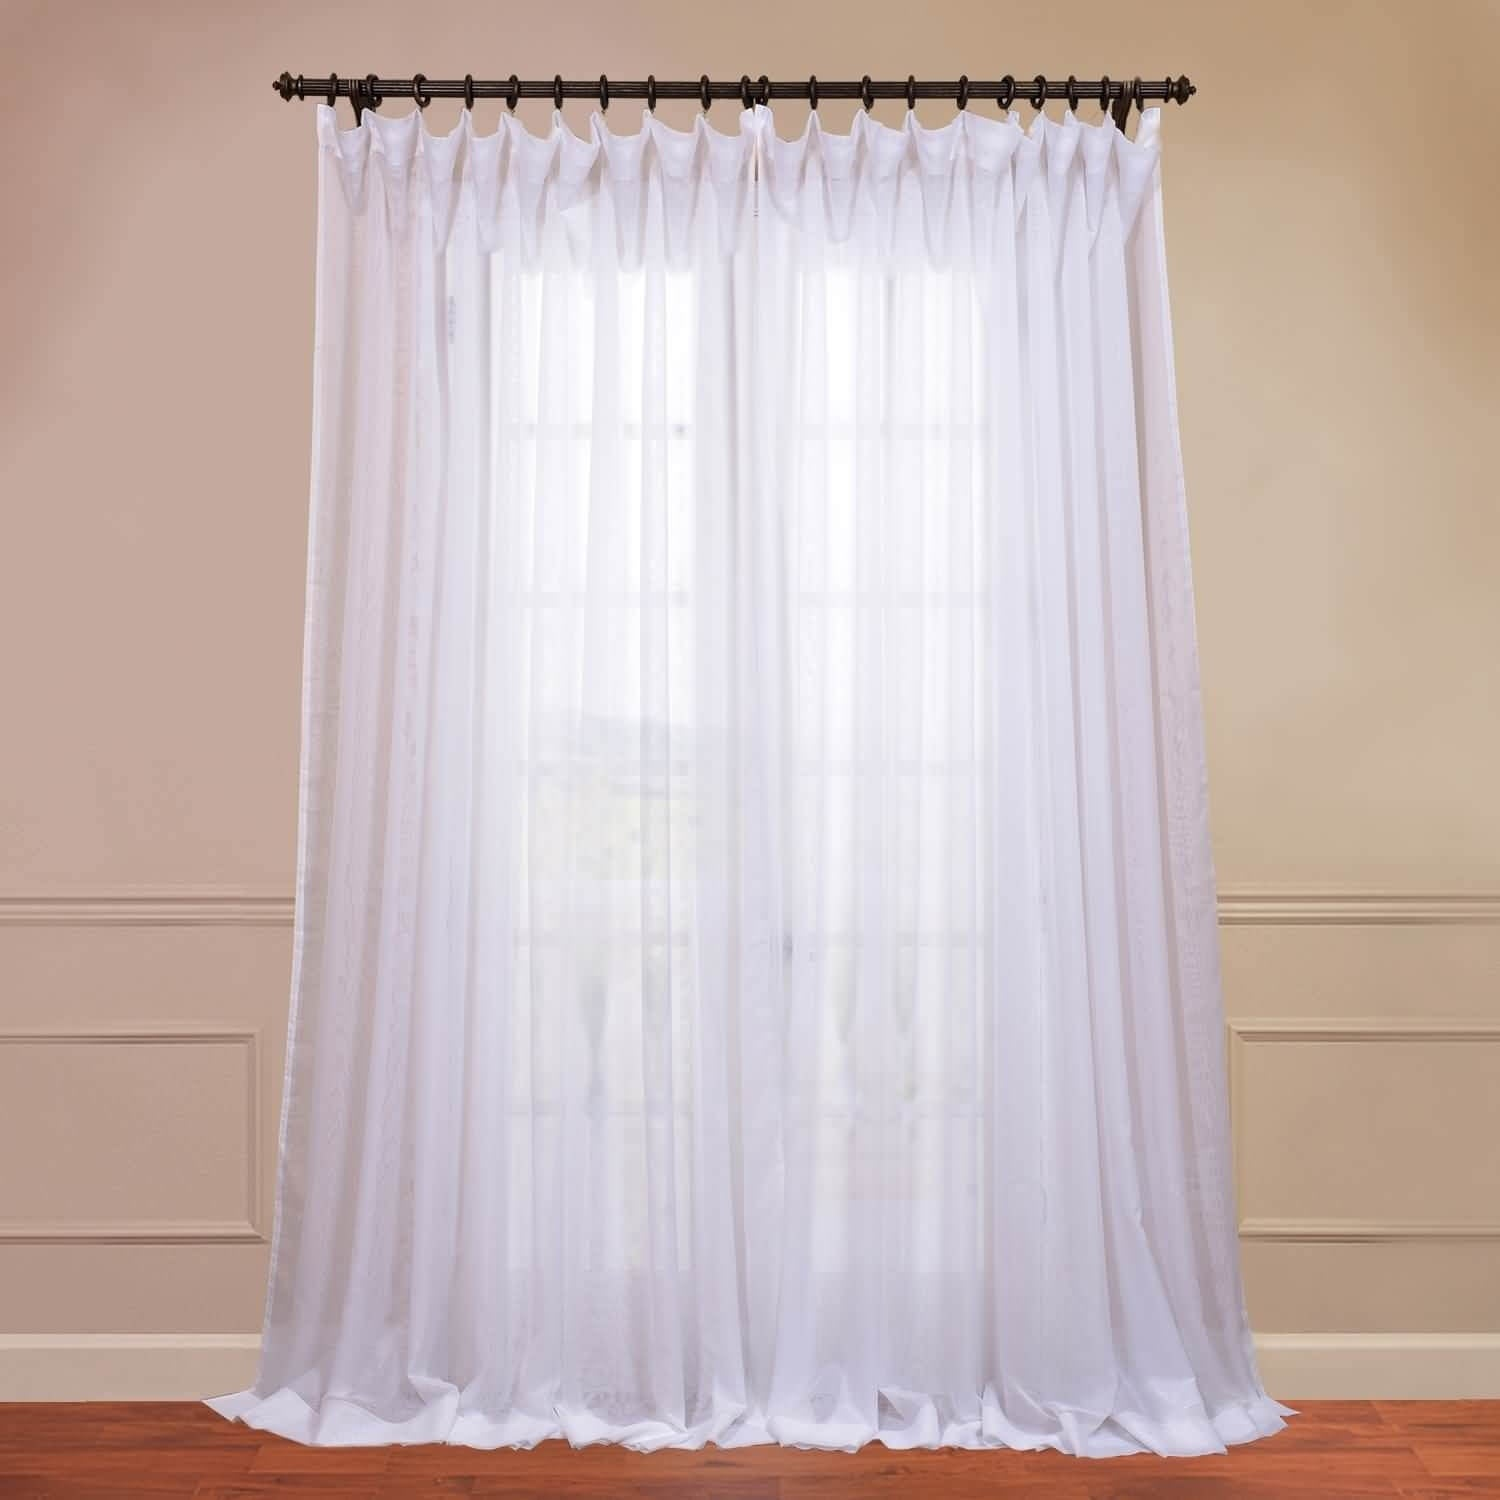 silver panel panels and moon postage sparkly shimmery voile curtain asp free white size sheer stars inches p